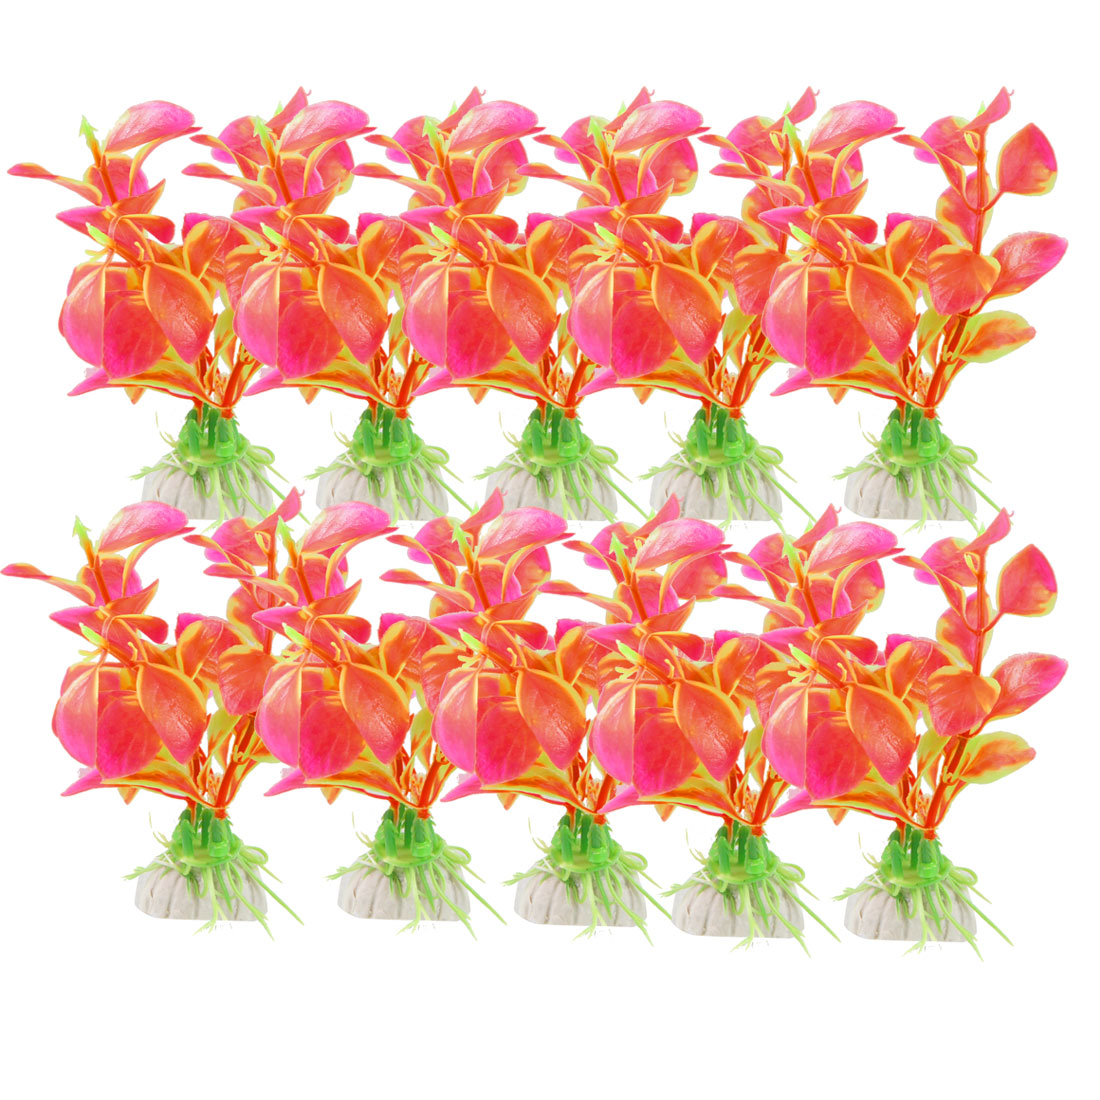 "10 Pcs 3.1"" High Pink Green Fish Tank Aquascape Simulation Aquatic Grasses"